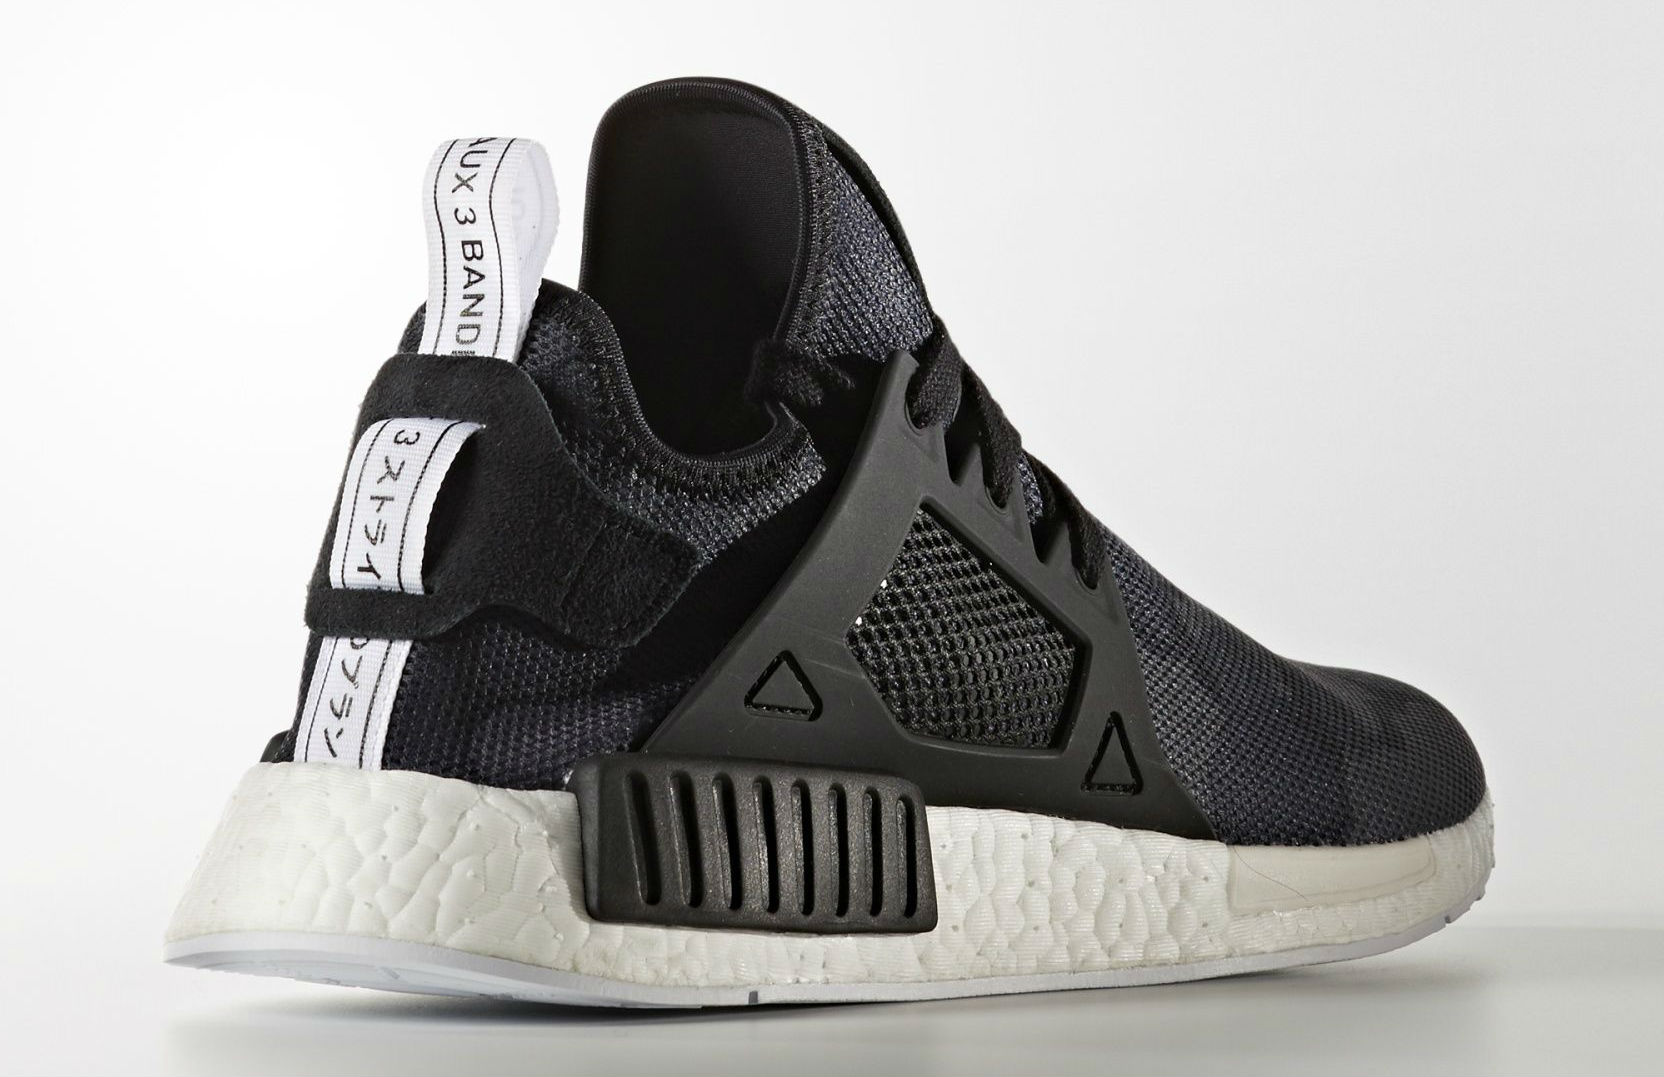 e21dbac0a554f UK Outlet Adidas NMD XR1 Primeknit Utility Black White BB2370